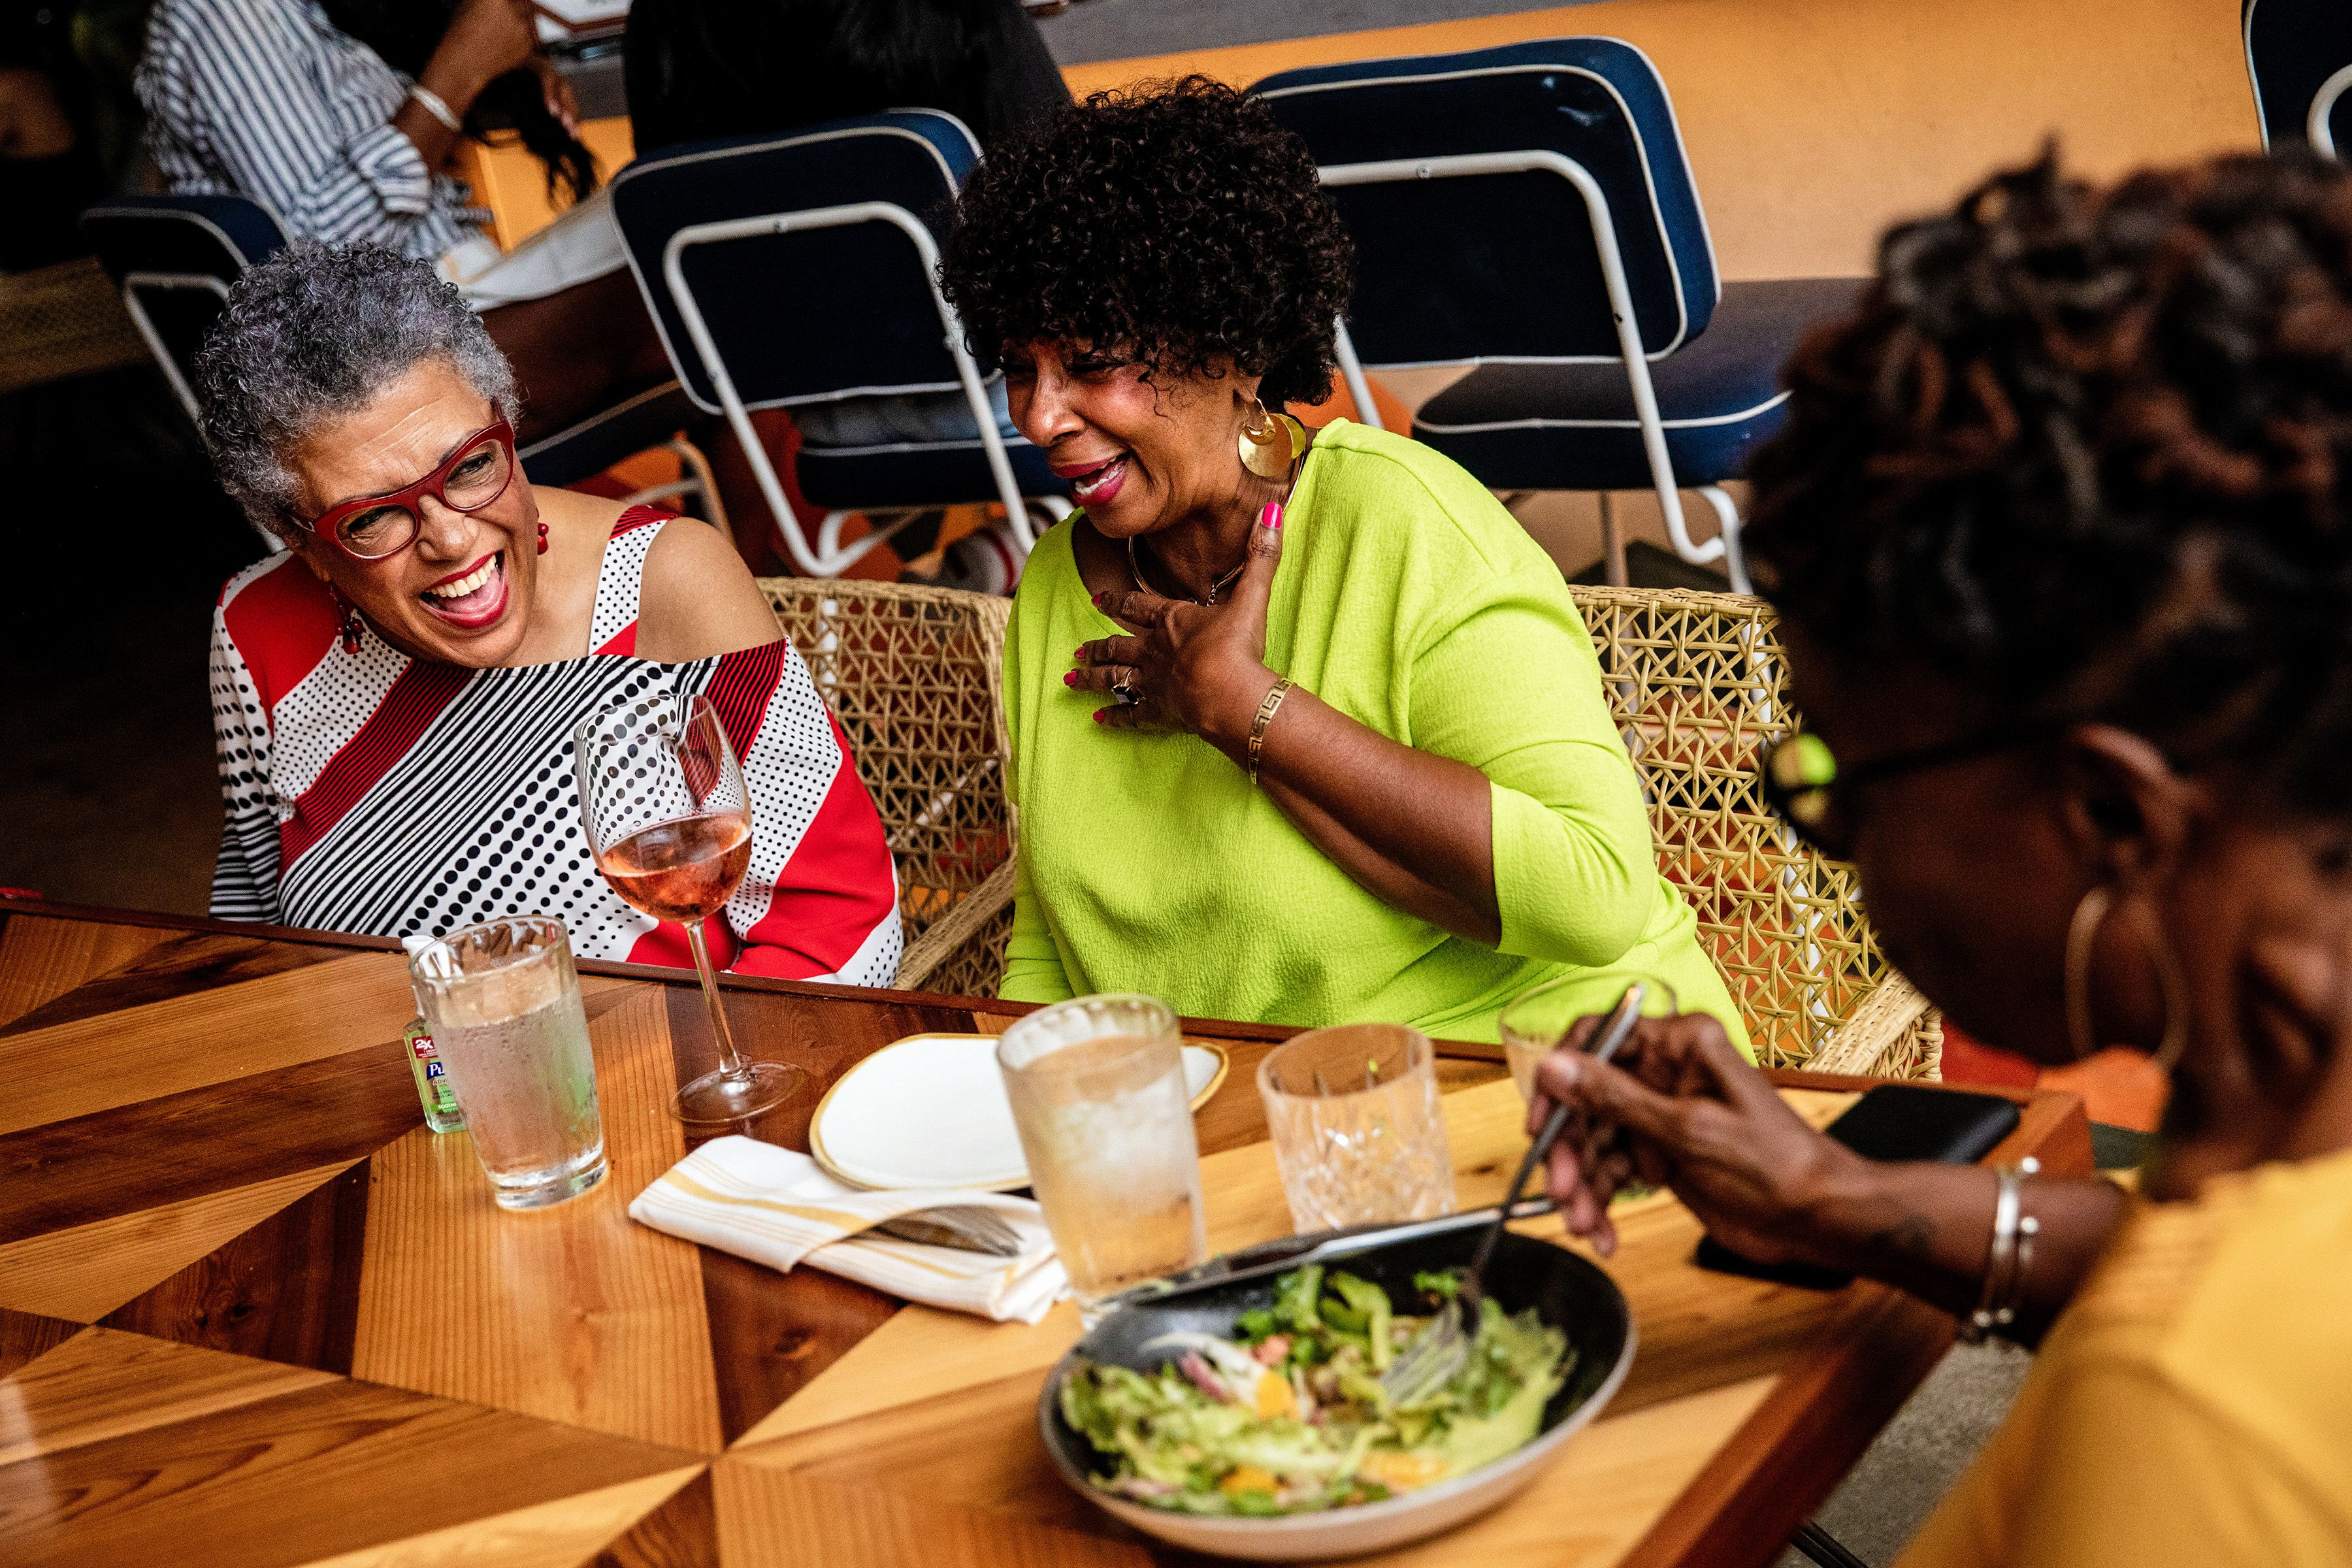 FILE -- Robbie Bell, 75, left, jokes with her friends Loretta McNeir, 68, center, and Anita McGruder, 72, at a restaurant in Miami on March 18, 2021. As some people start to shake off coronavirus precautions, those who are waiting their turn for a vaccine say the FOMO (fear of missing out) is real. (Scott McIntyre/The New York Times)